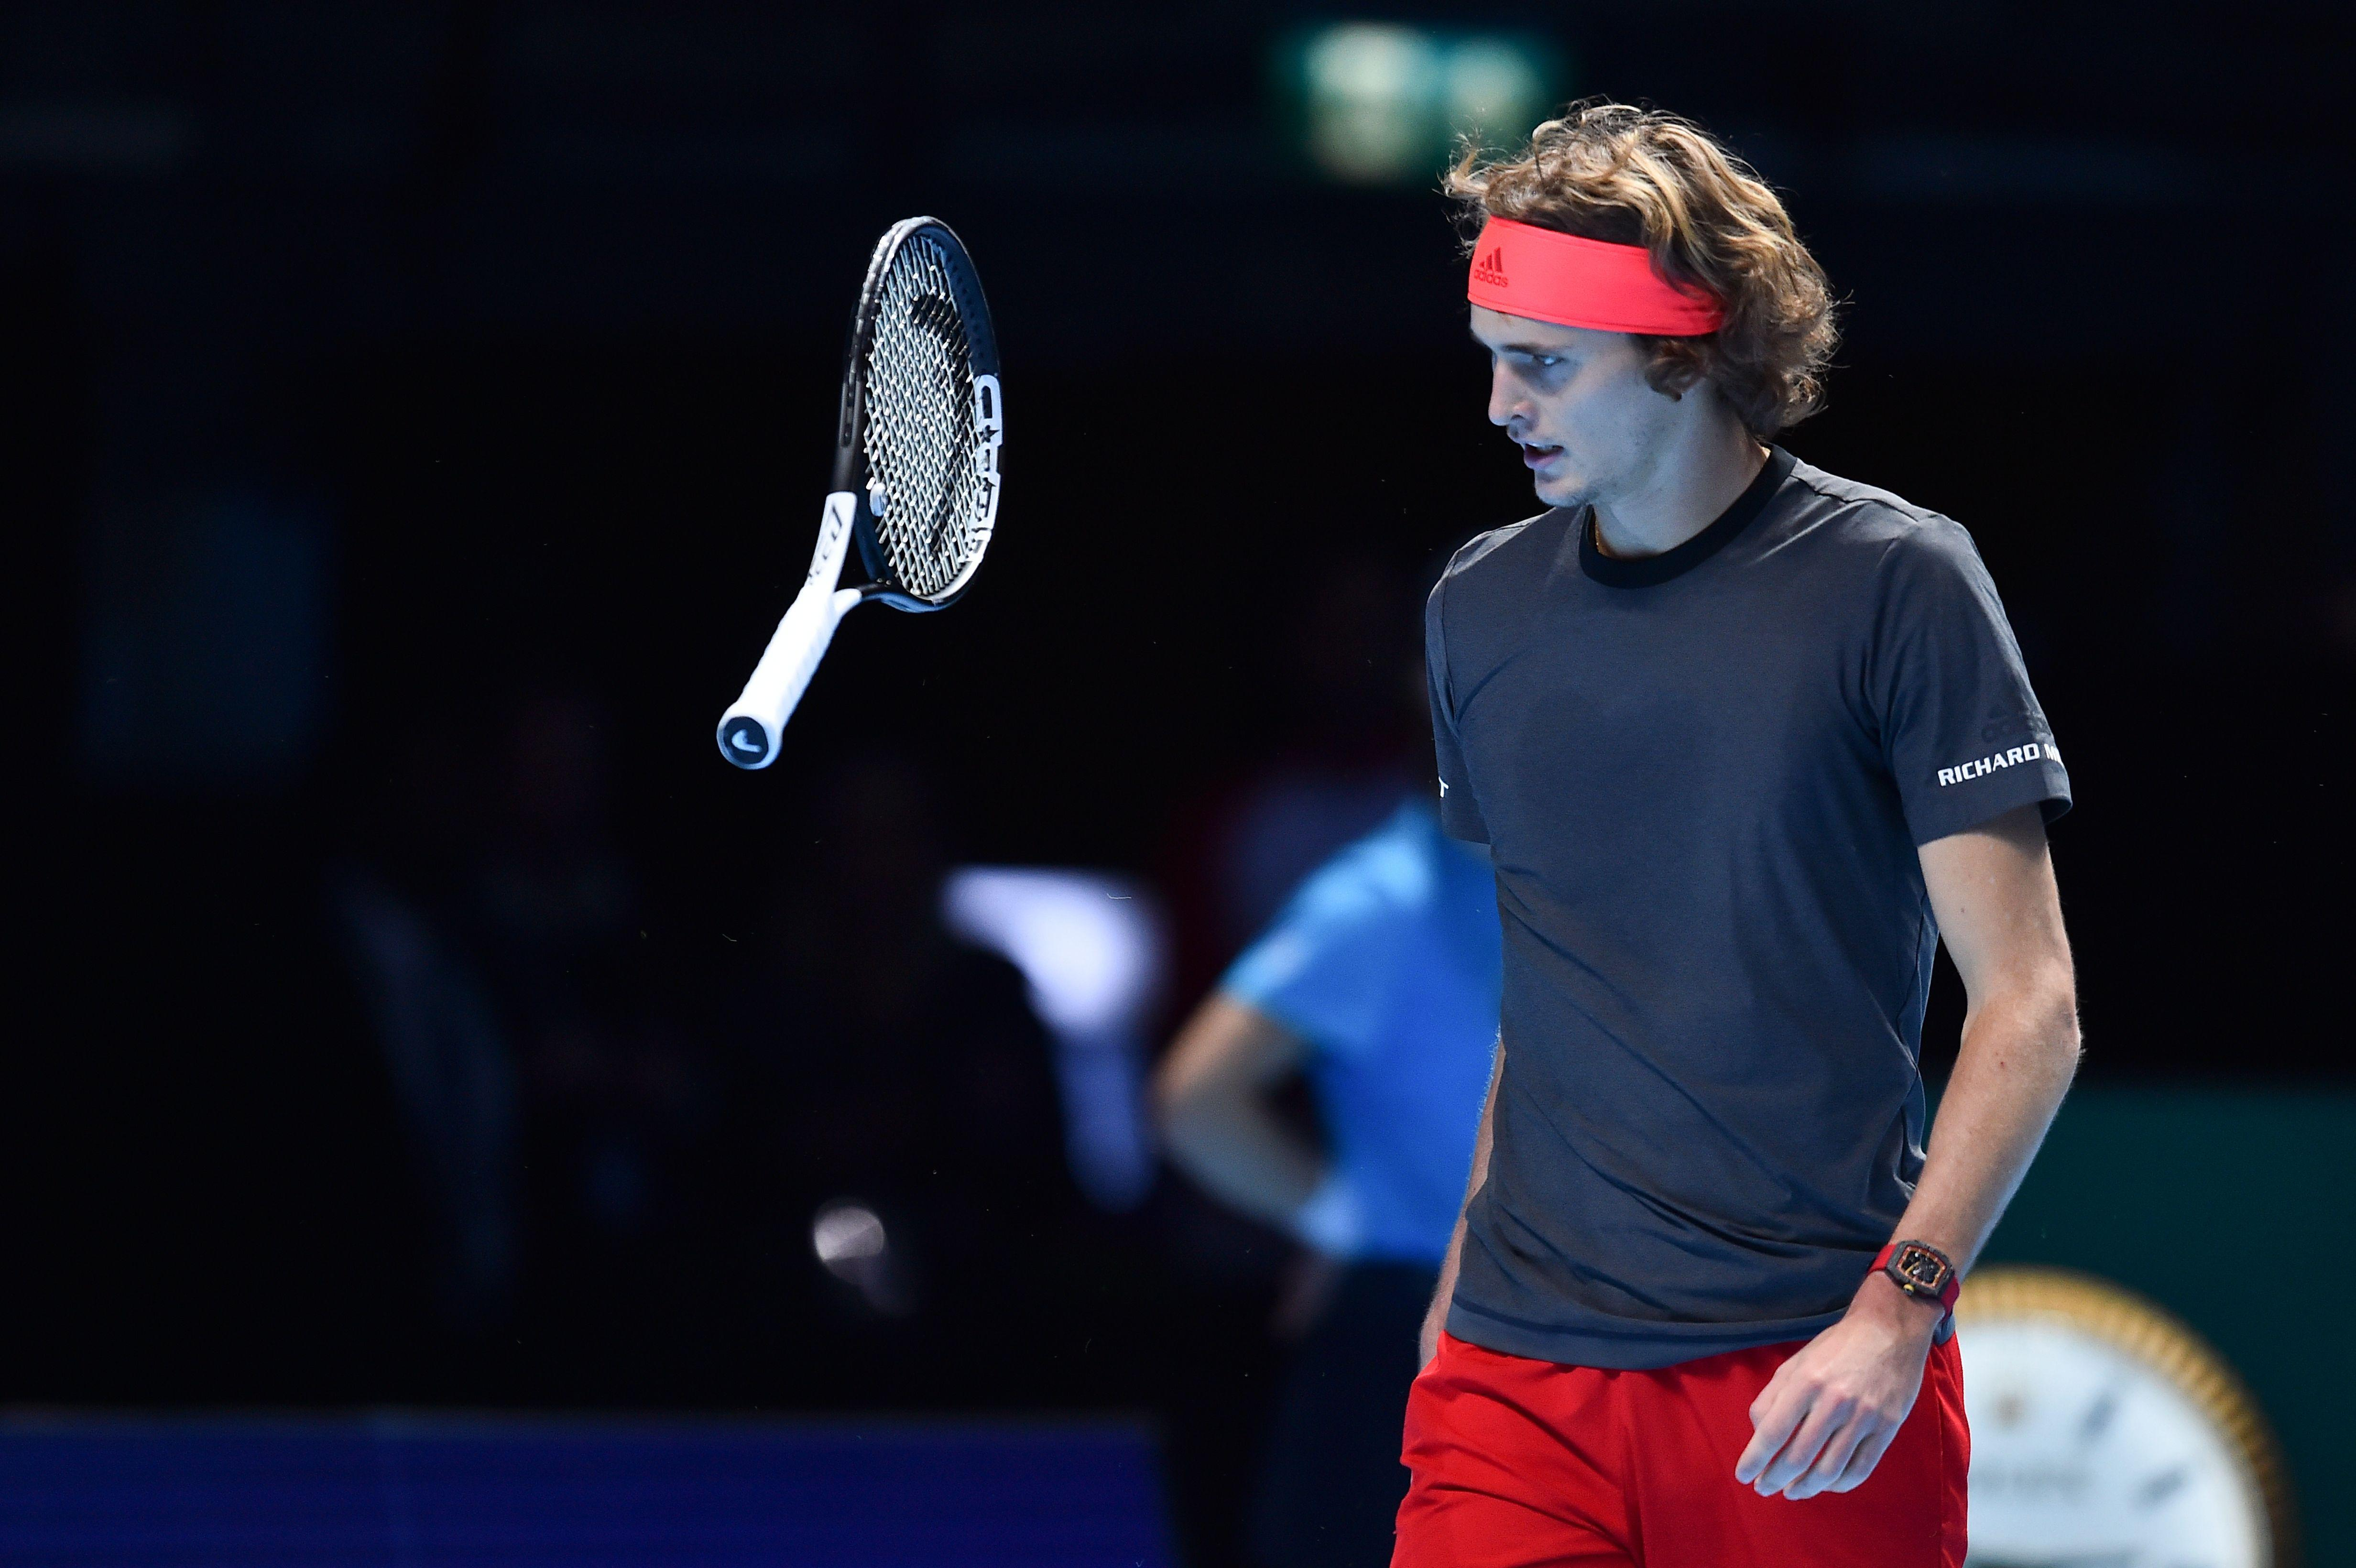 The German ace launched his racquet after he lost a point at the O2 Arena